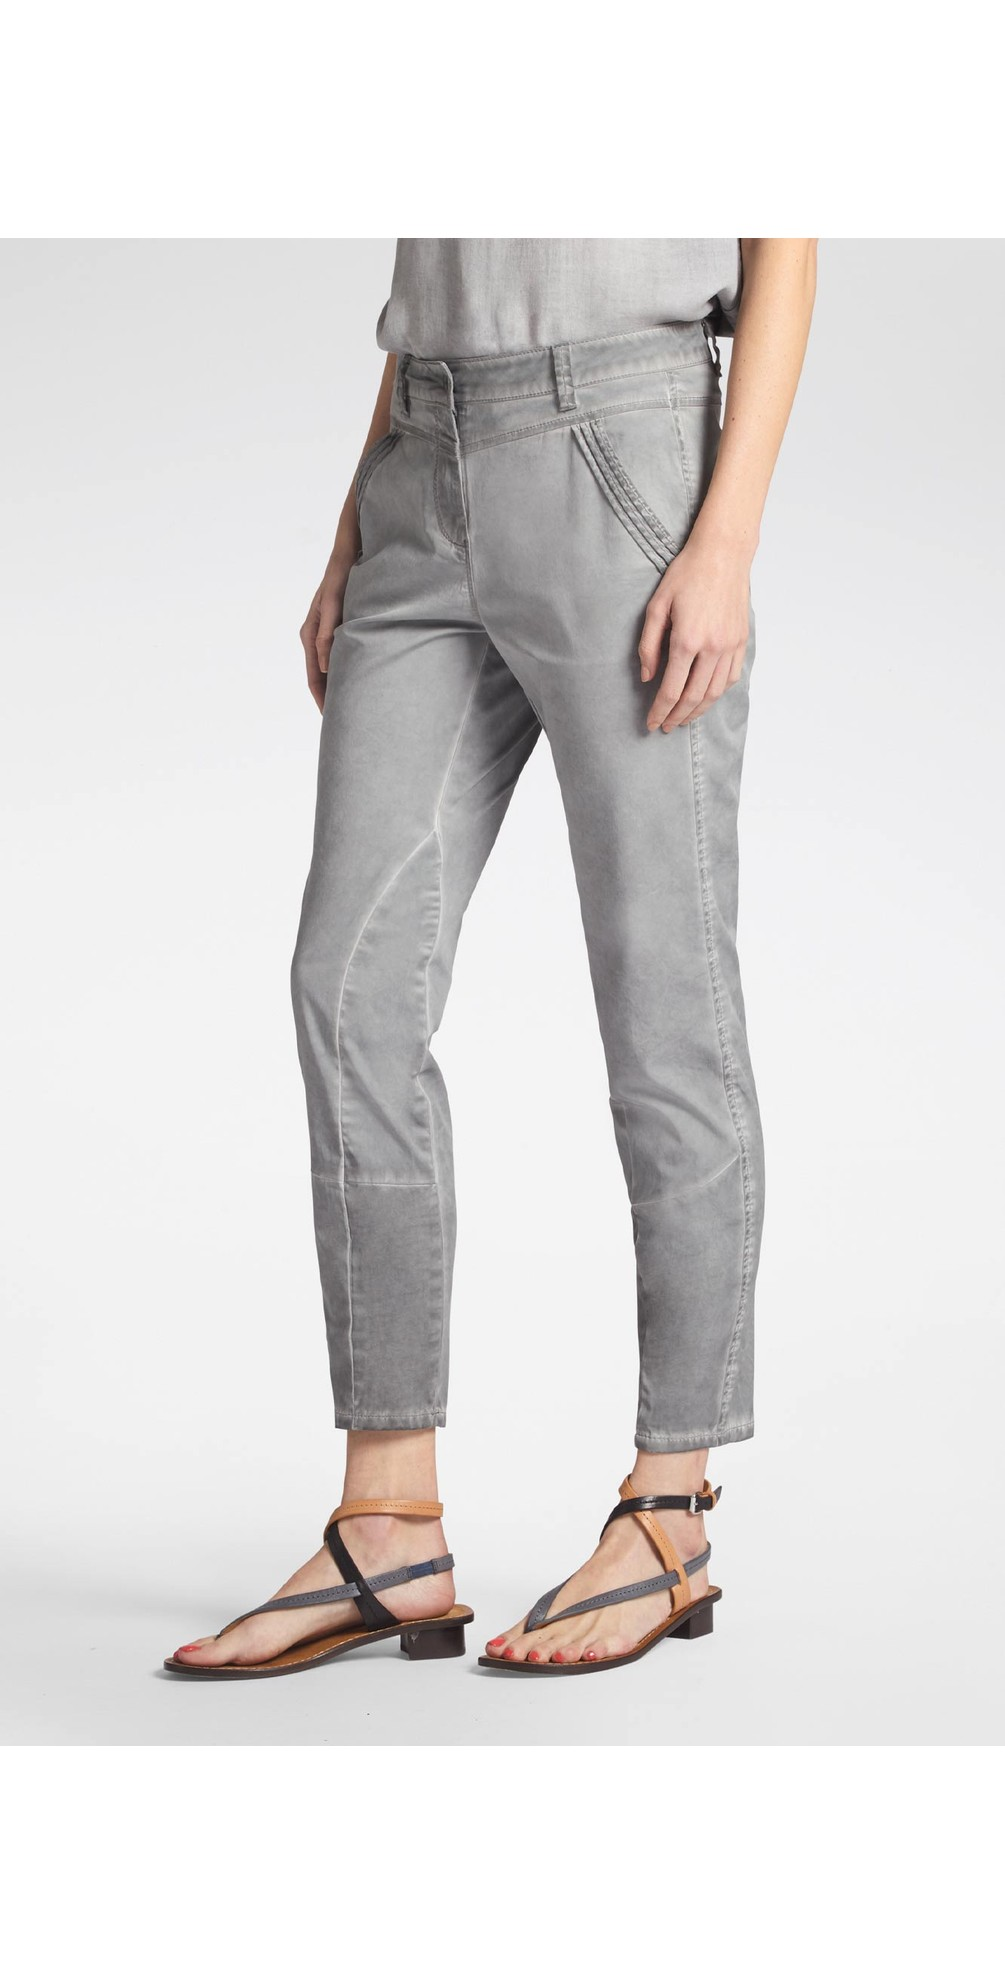 Skinny Slim Fit Washed Jeans main image